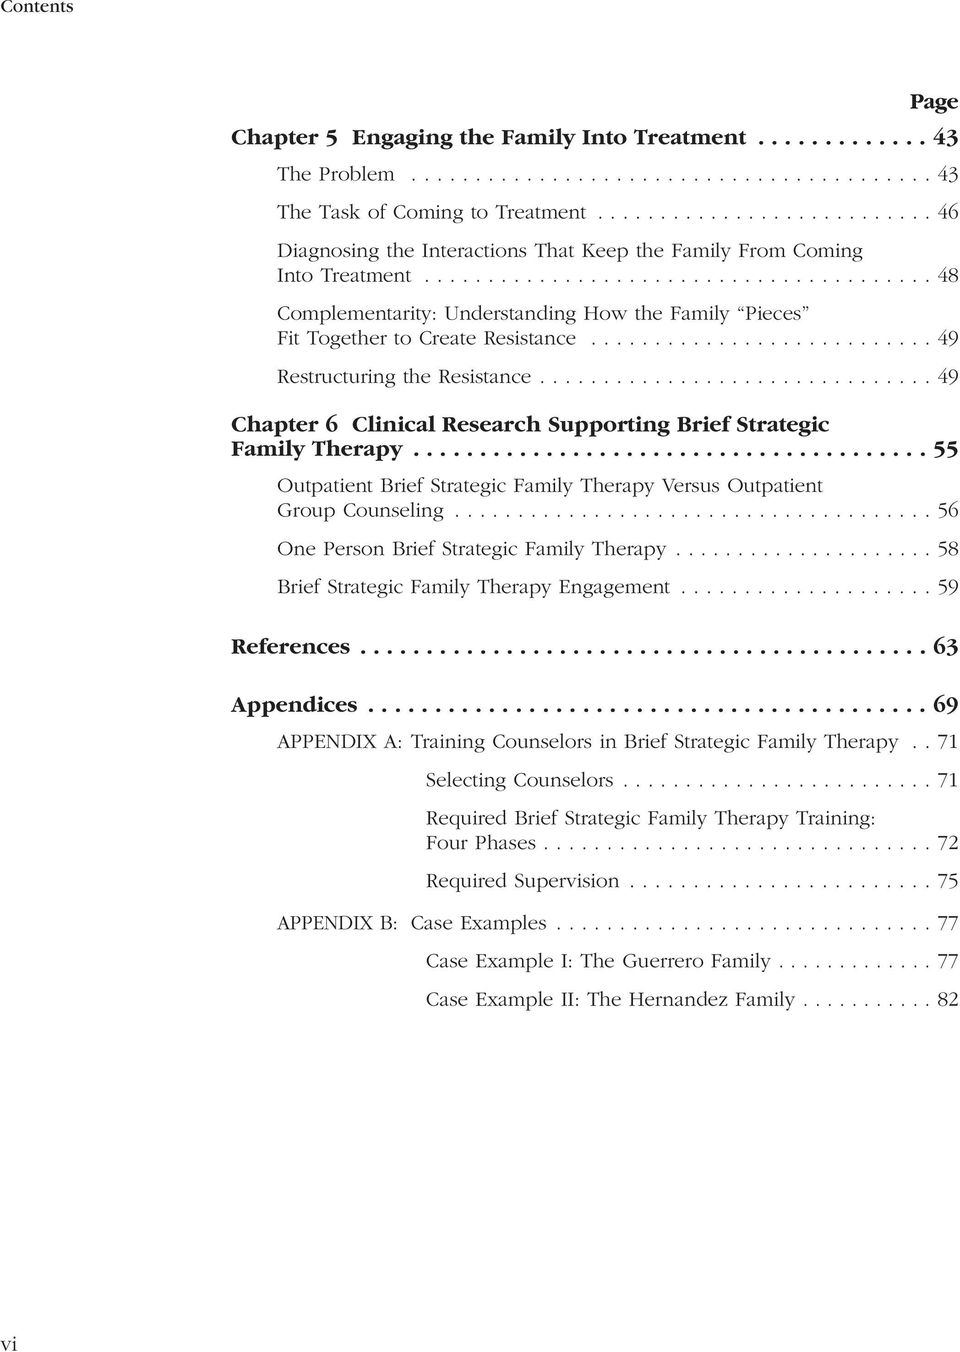 .......................... 49 Restructuring the Resistance............................... 49 Chapter 6 Clinical Research Supporting Brief Strategic Family Therapy.